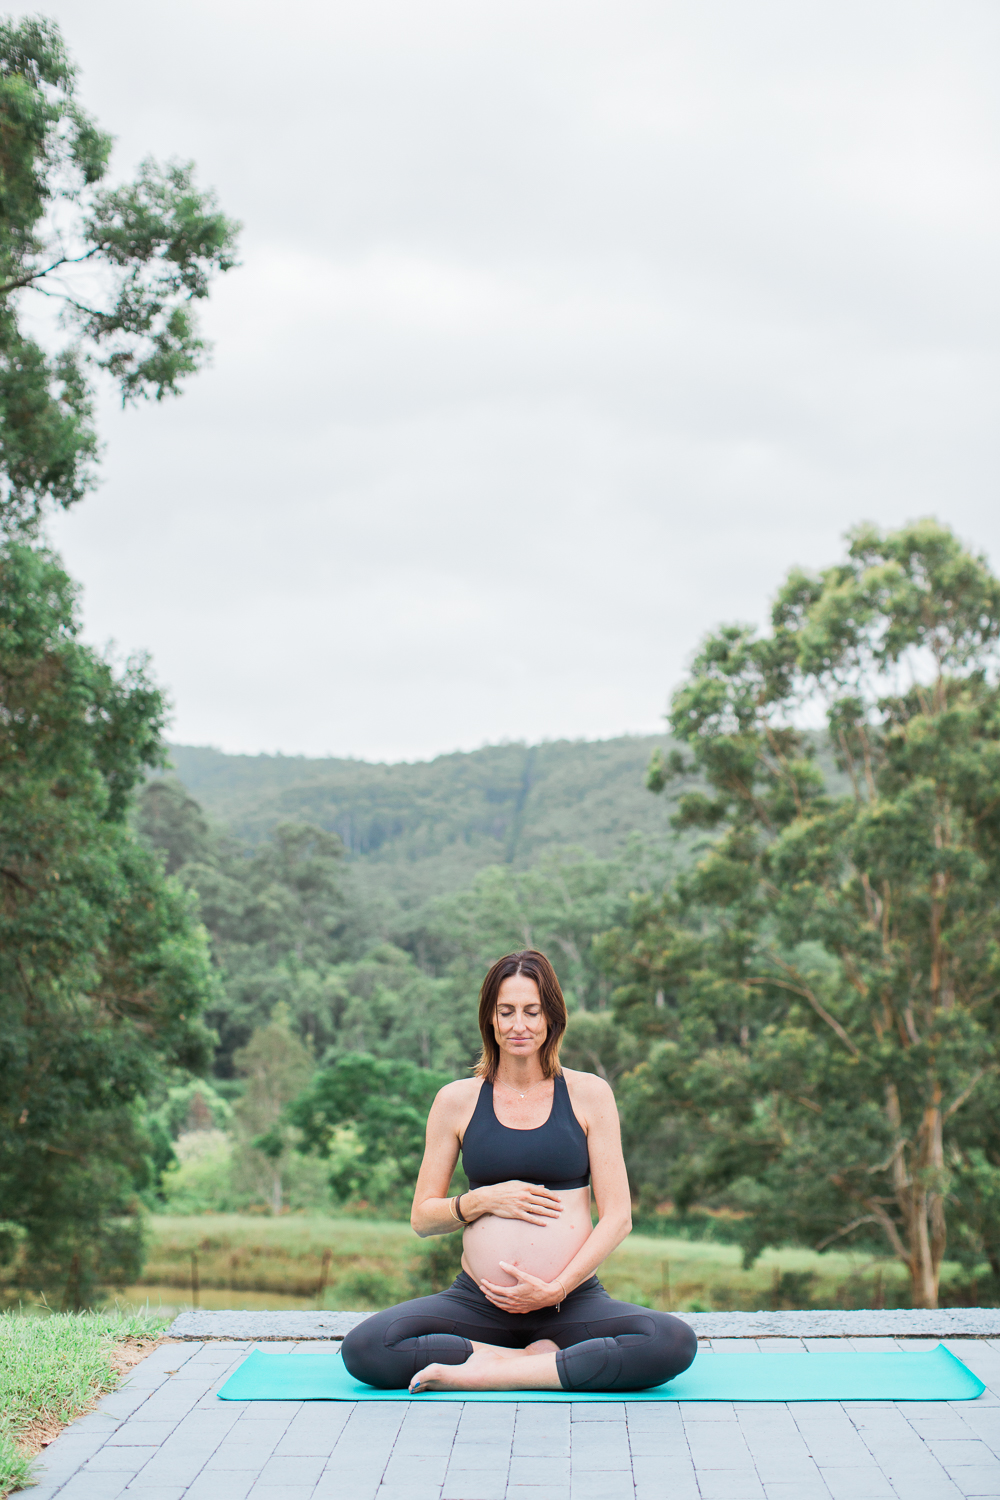 sydney-yoga-photography-portraits-6.jpg